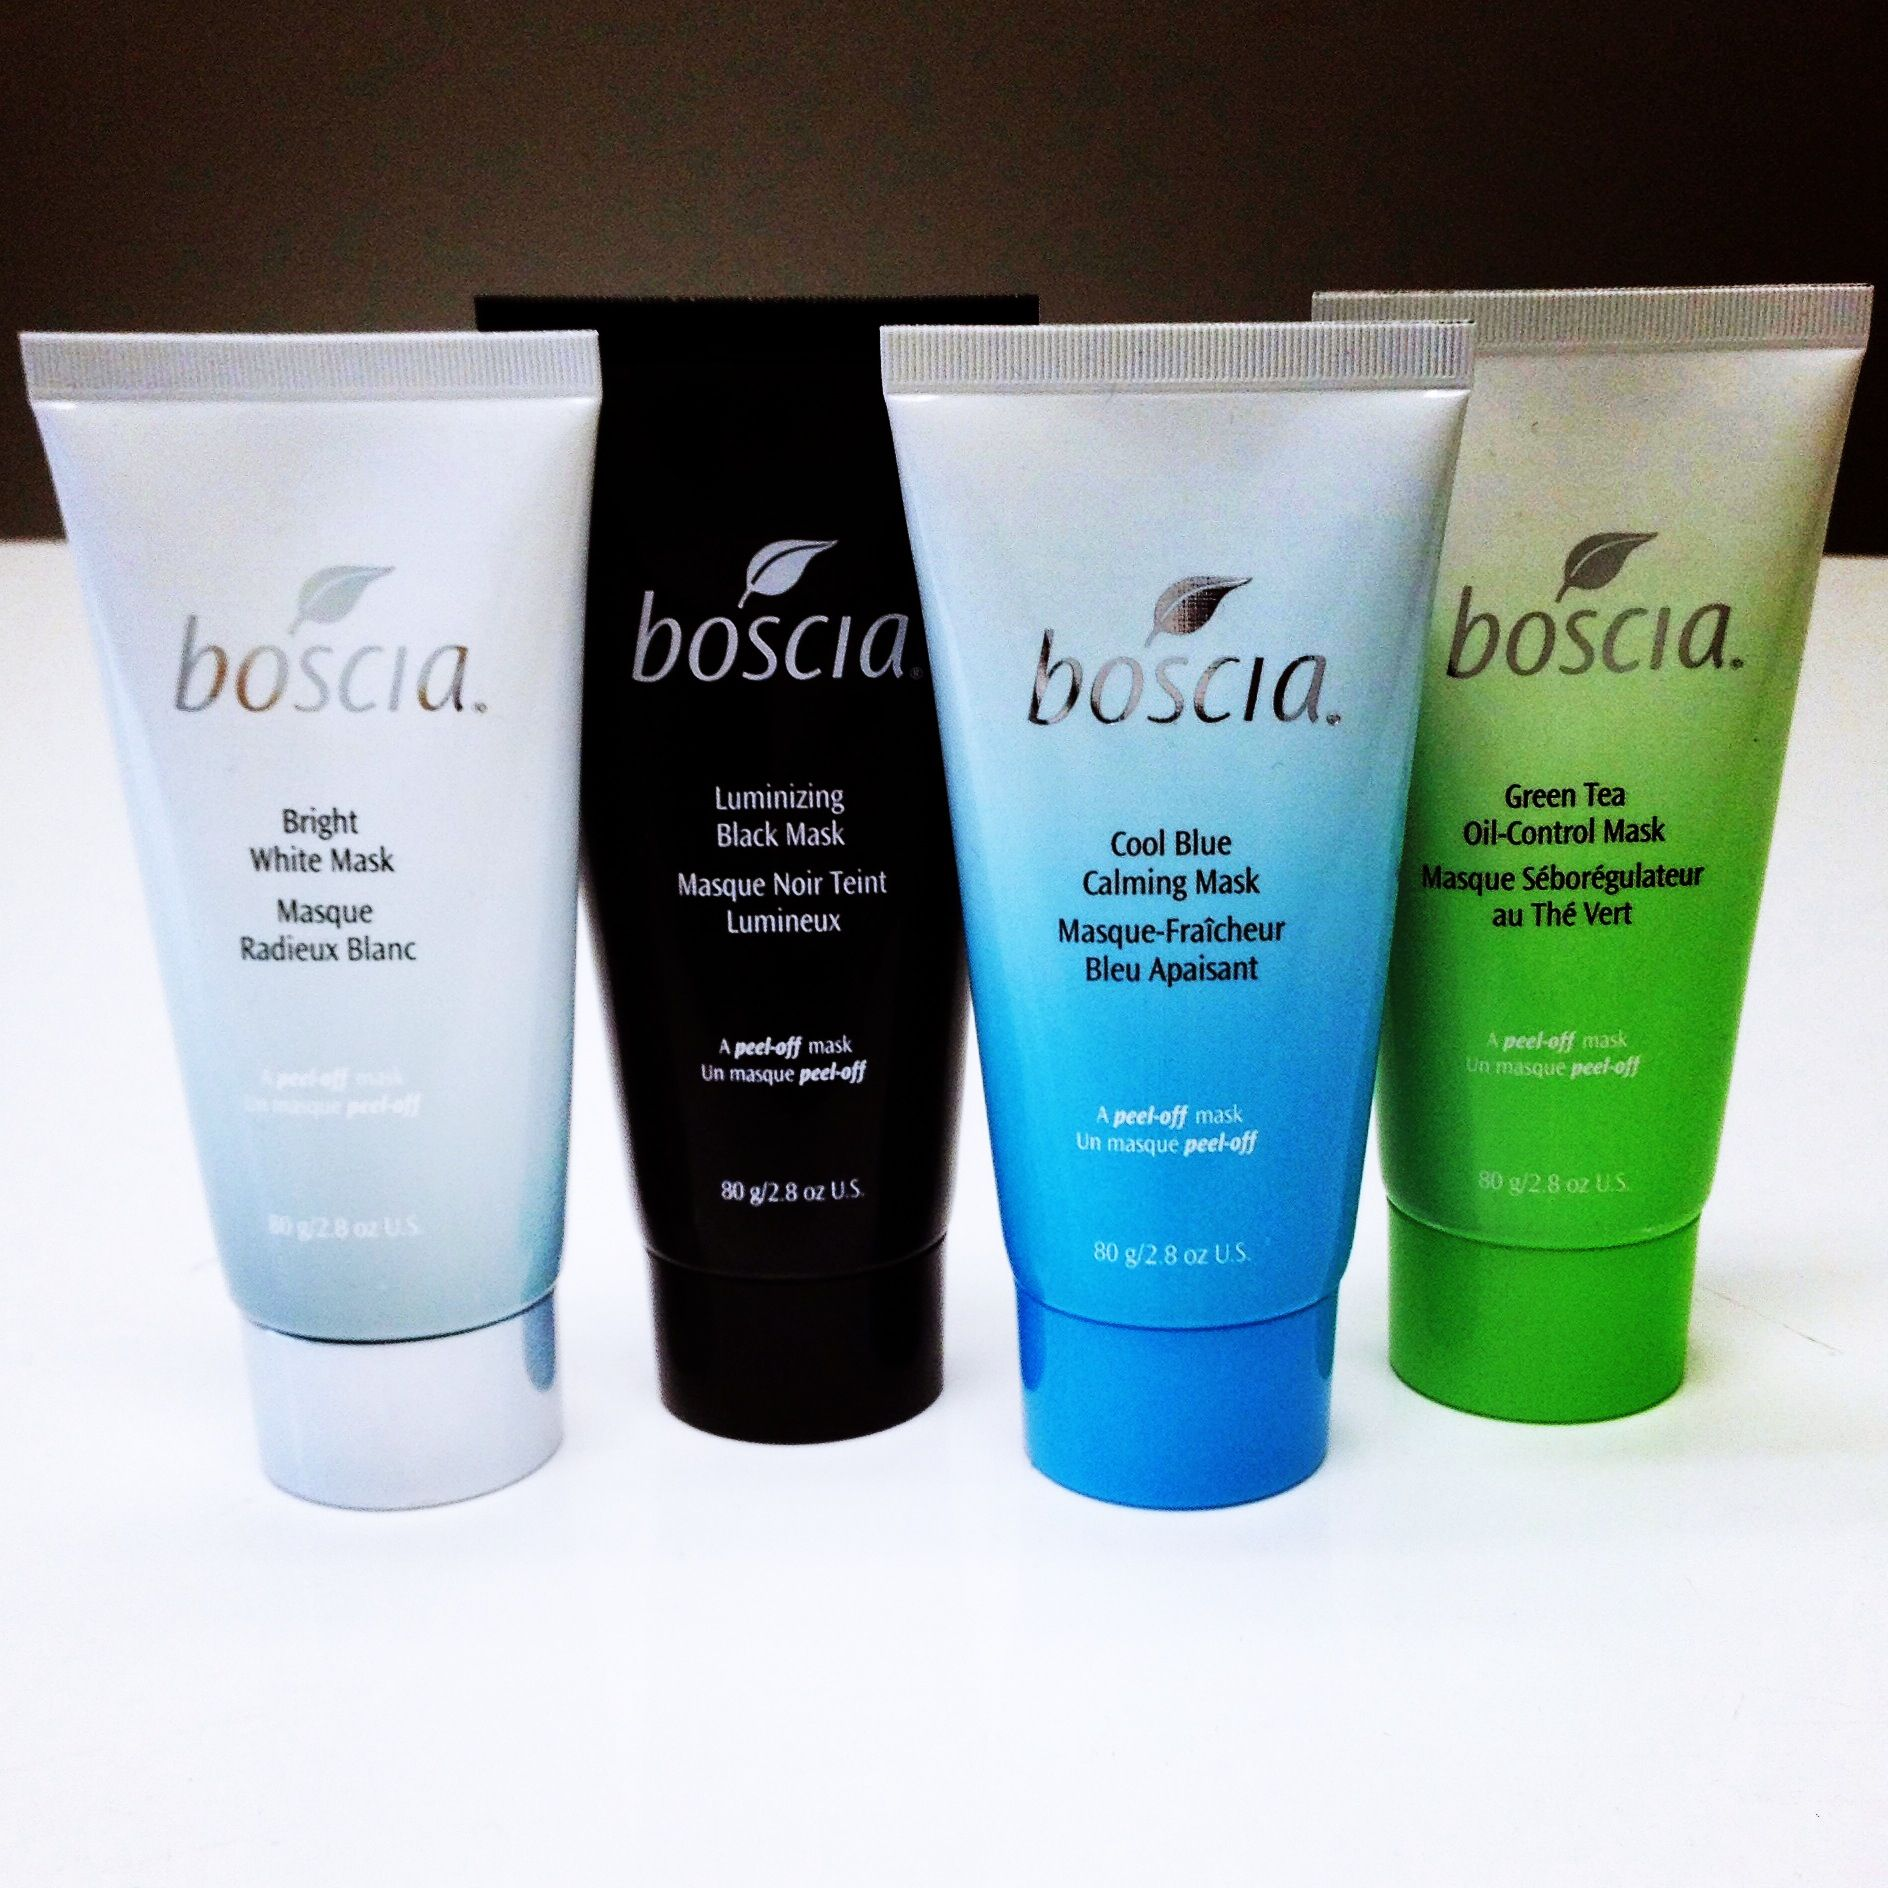 boscia peeloff Mask Collection (from left to right